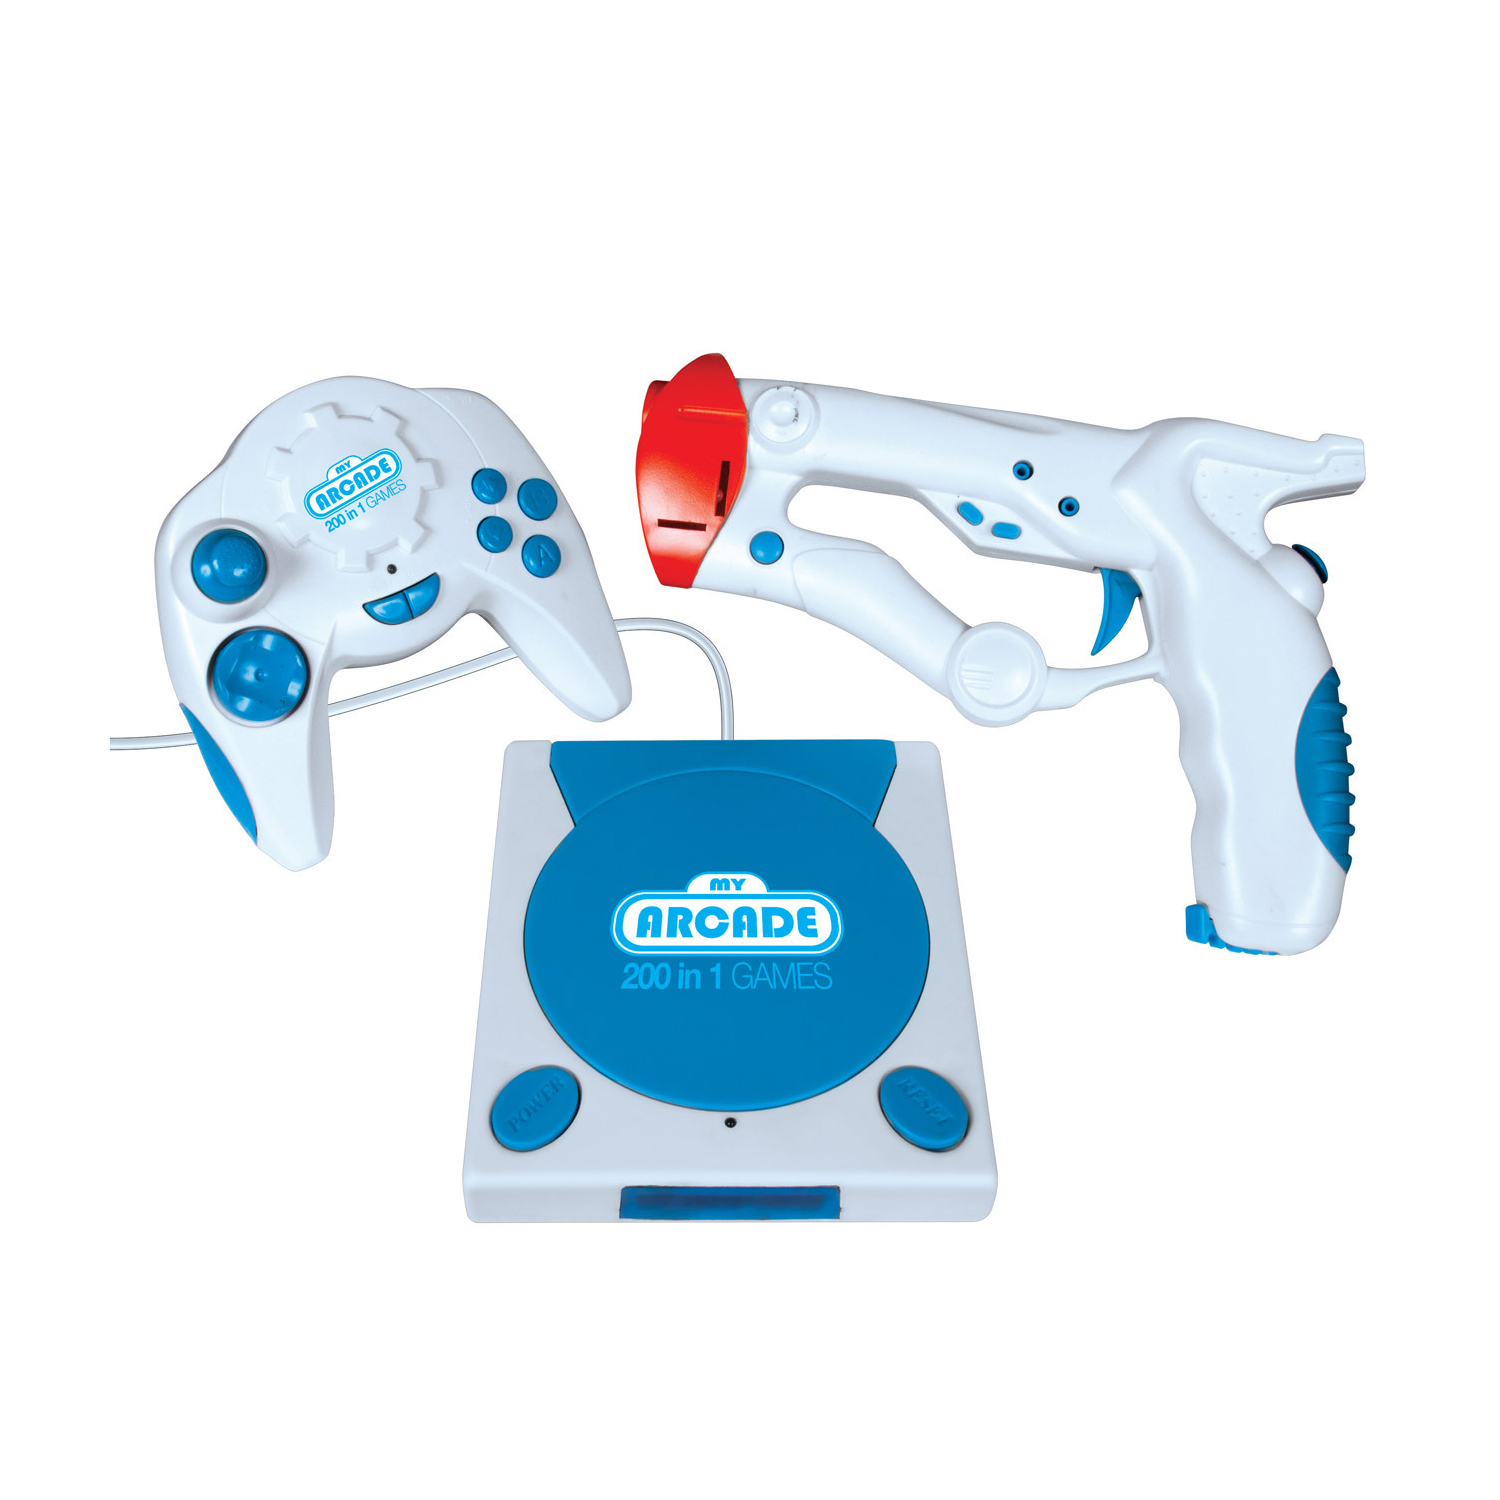 Image of Dreamgear DGUN-2572 My Arcade Video Game Station with 200 Built-In Games